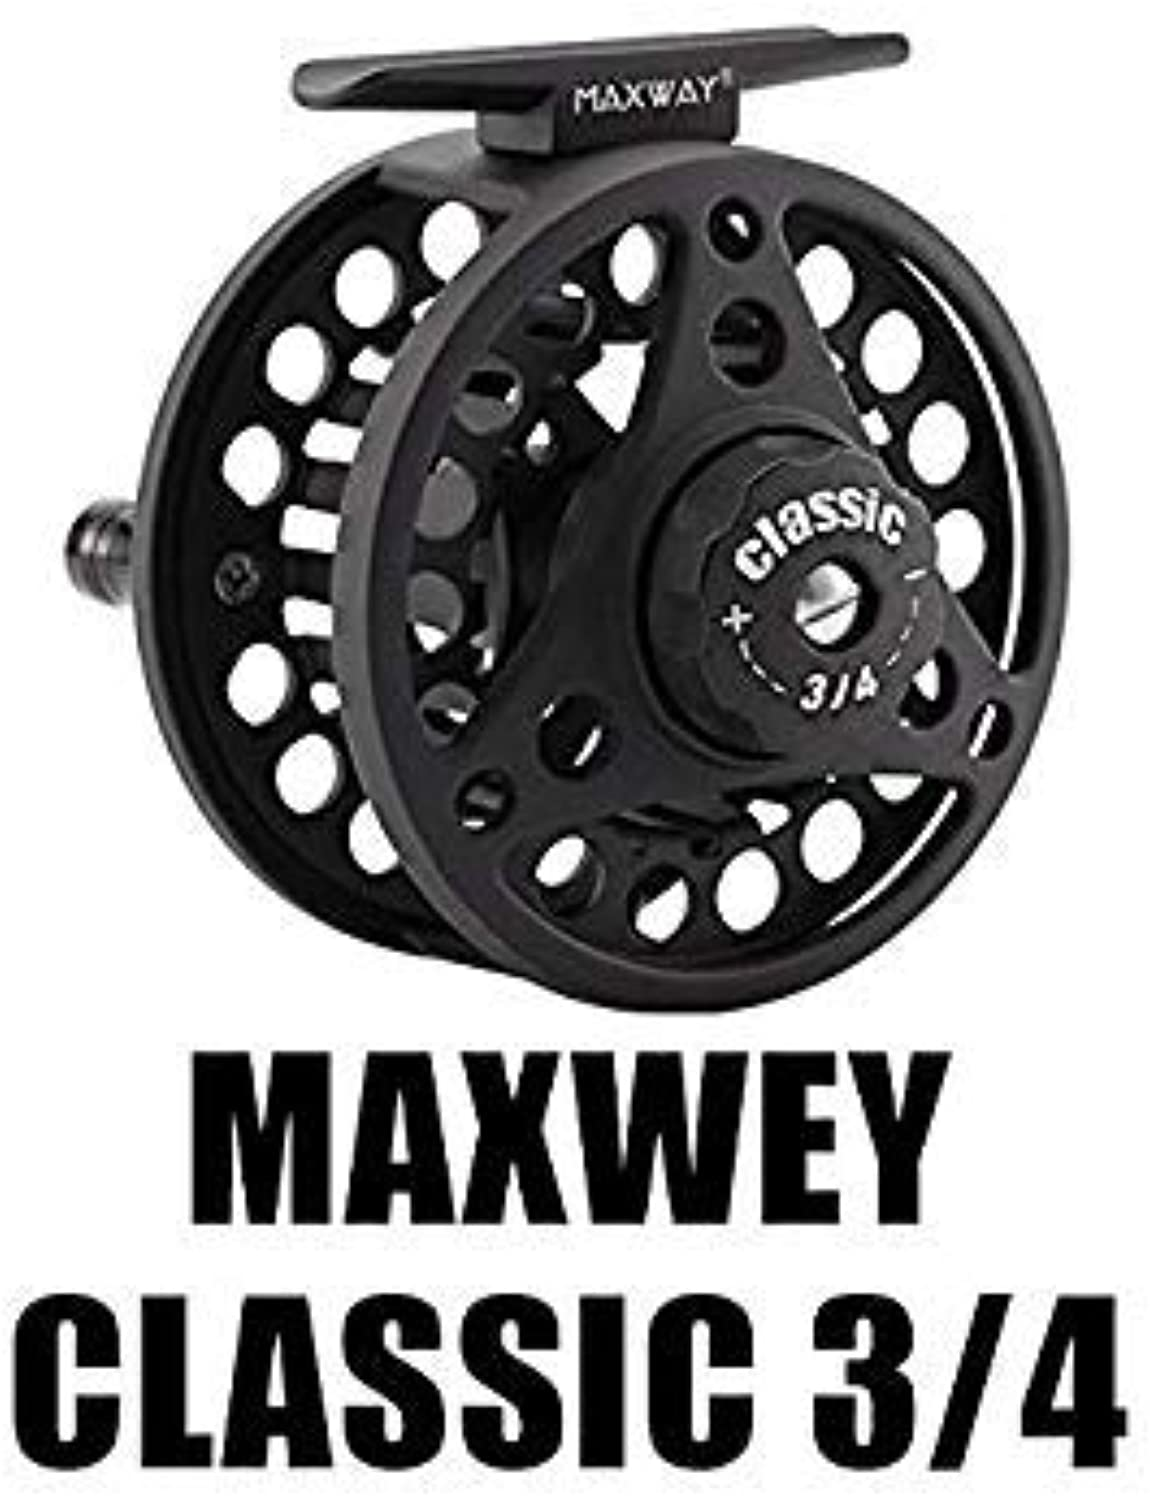 GEOPONICS SeaKnight MAXWAY Classic New 3 4 5 6 7 8 Full Metal 3BB Fly Fishing Reel 1 1 Aluminium Body Stream Fishing Coil Fly Tackle color 34 Bearing Quantity 3